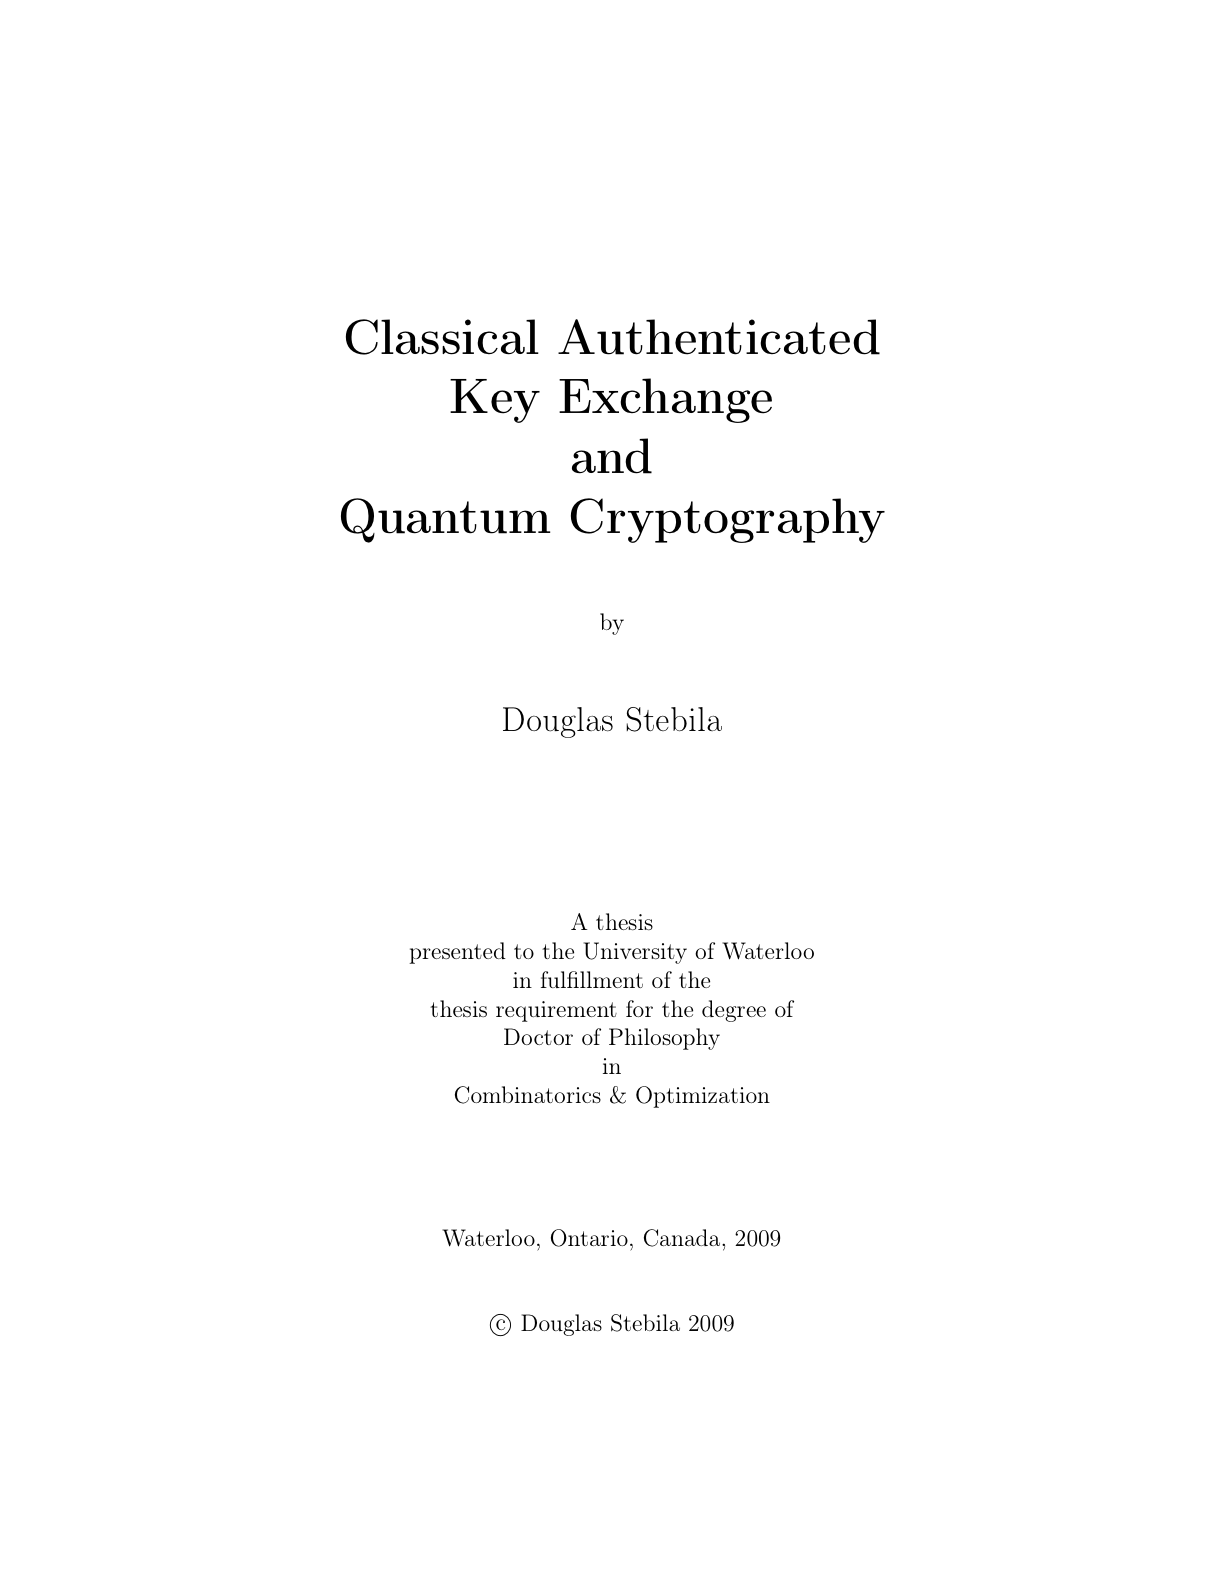 quantum cryptography thesis Quantum cryptography discussion chapter name: project title: instructor: institution: submission date: conclusion quantum cryptography has been extensively used by.